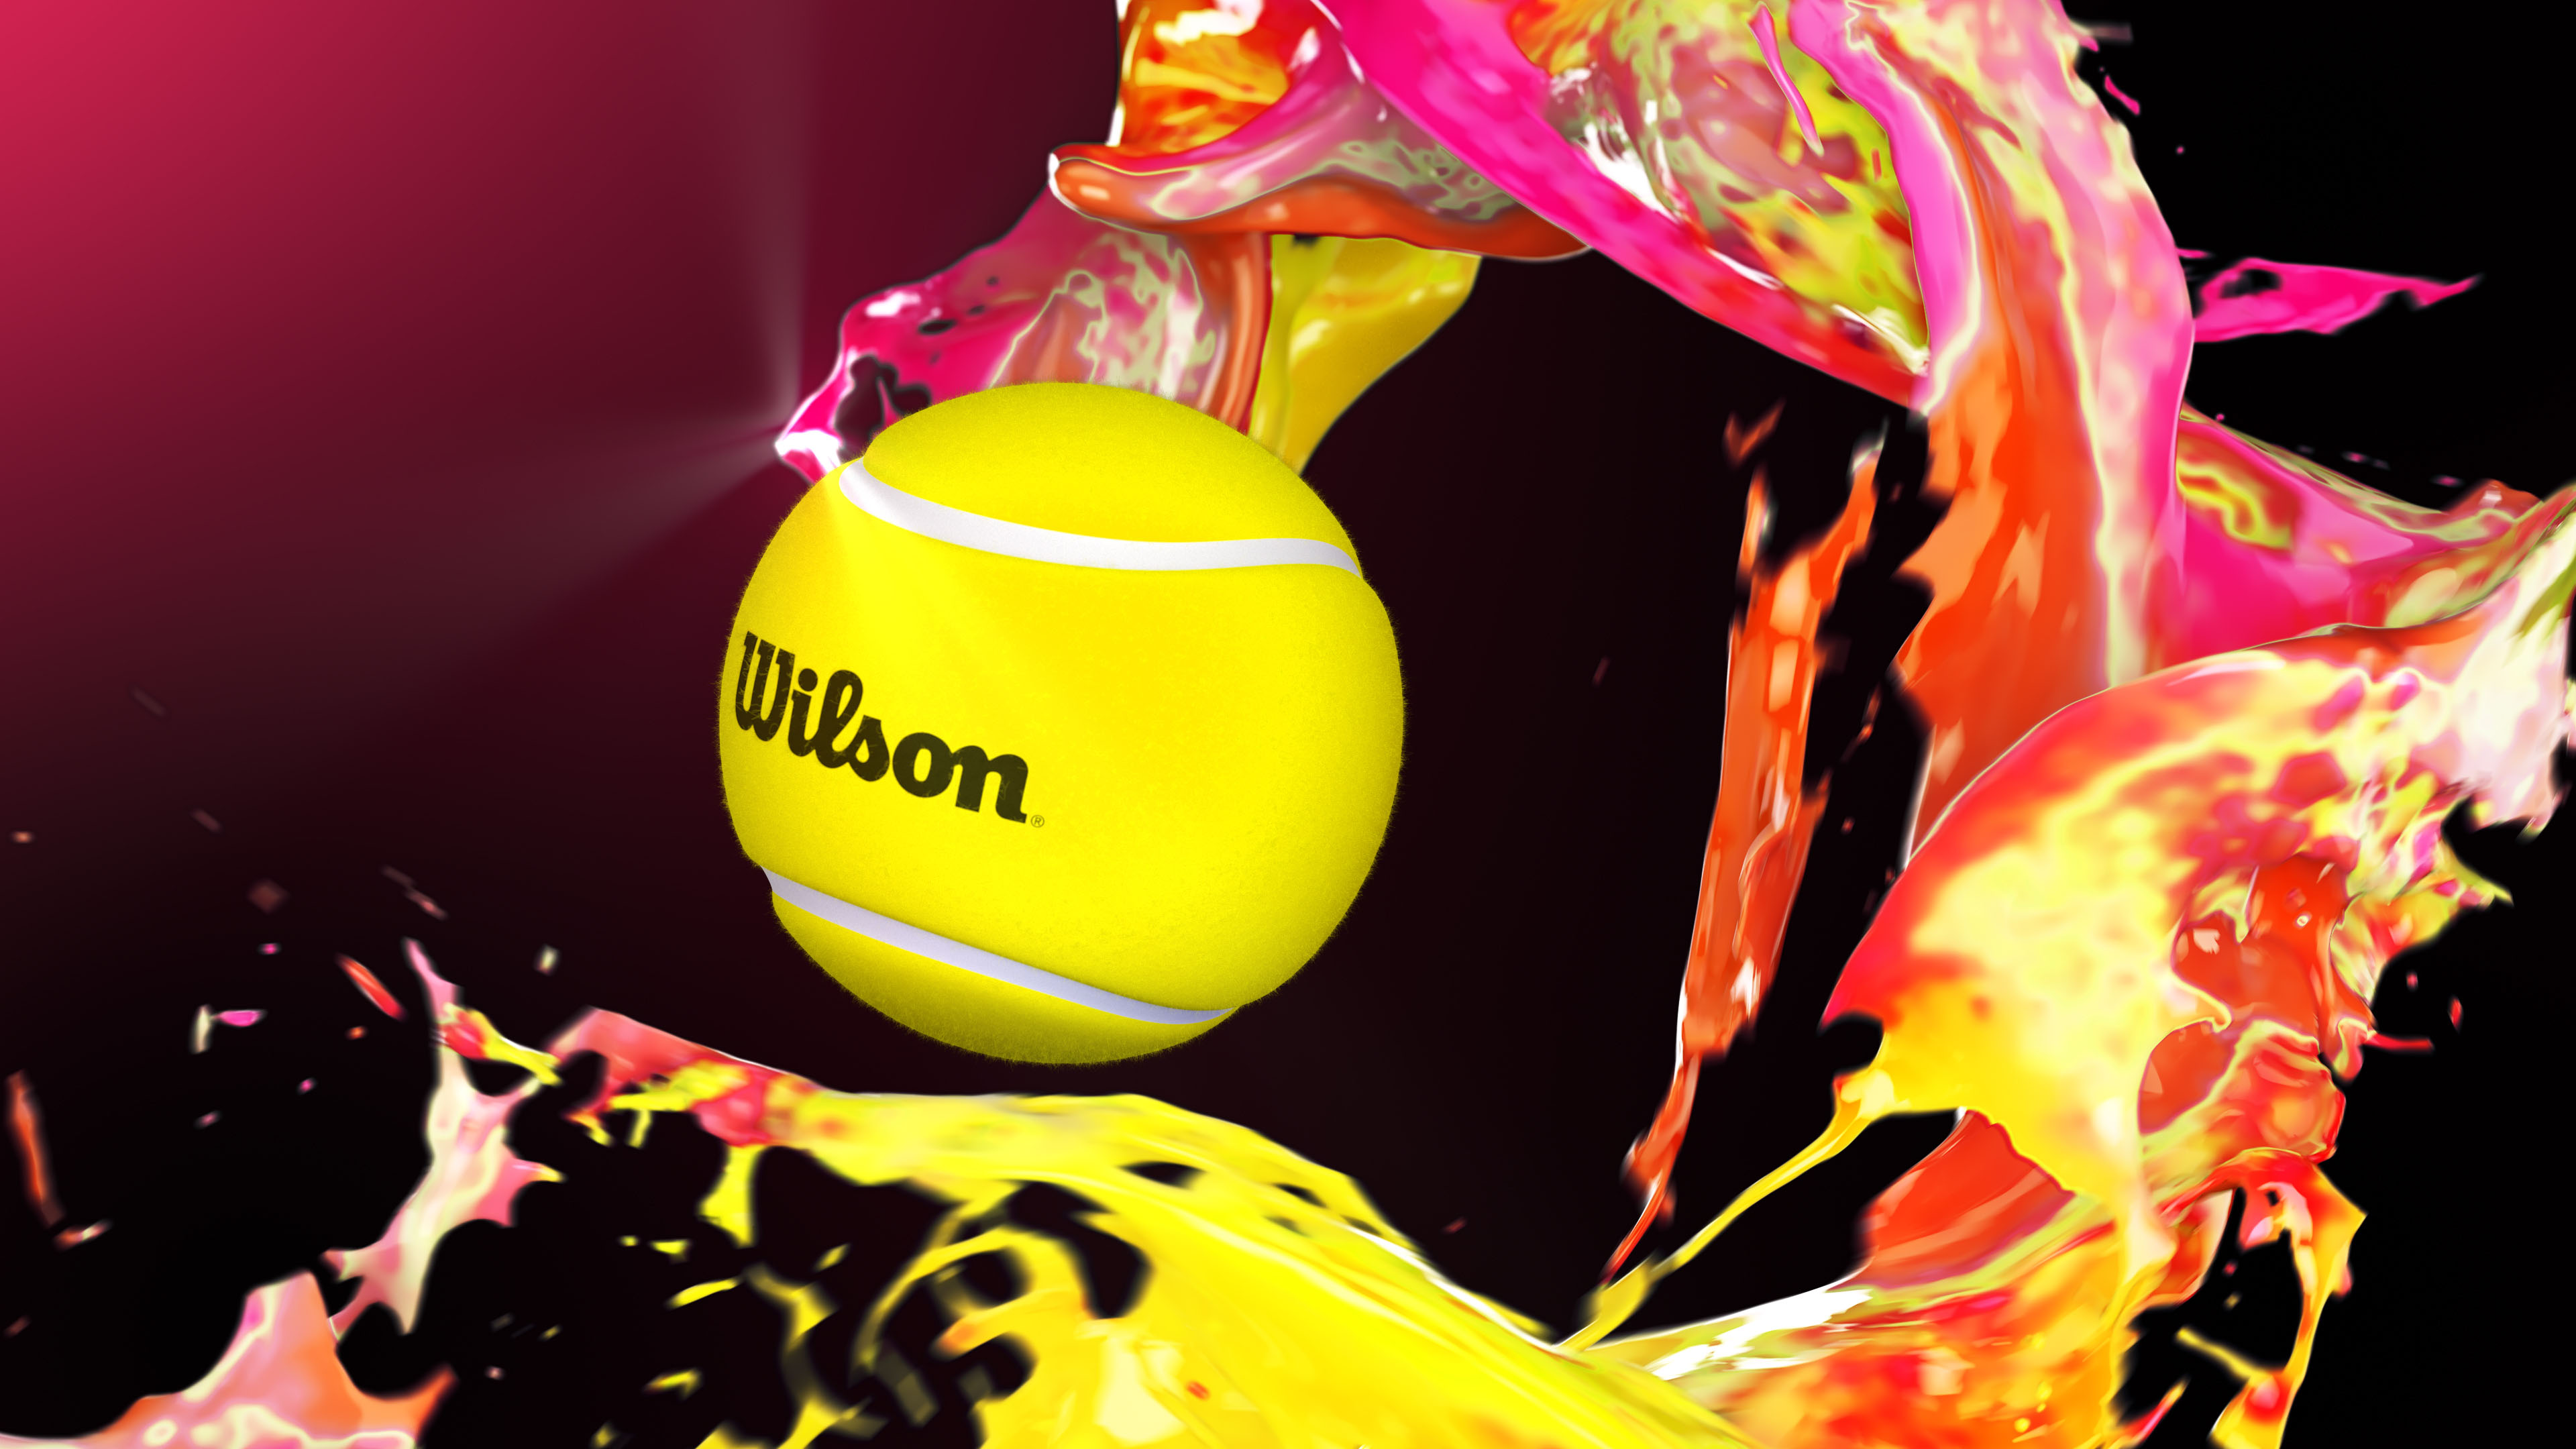 Wilson tennis ball 3D visualization with fluid effects on red background